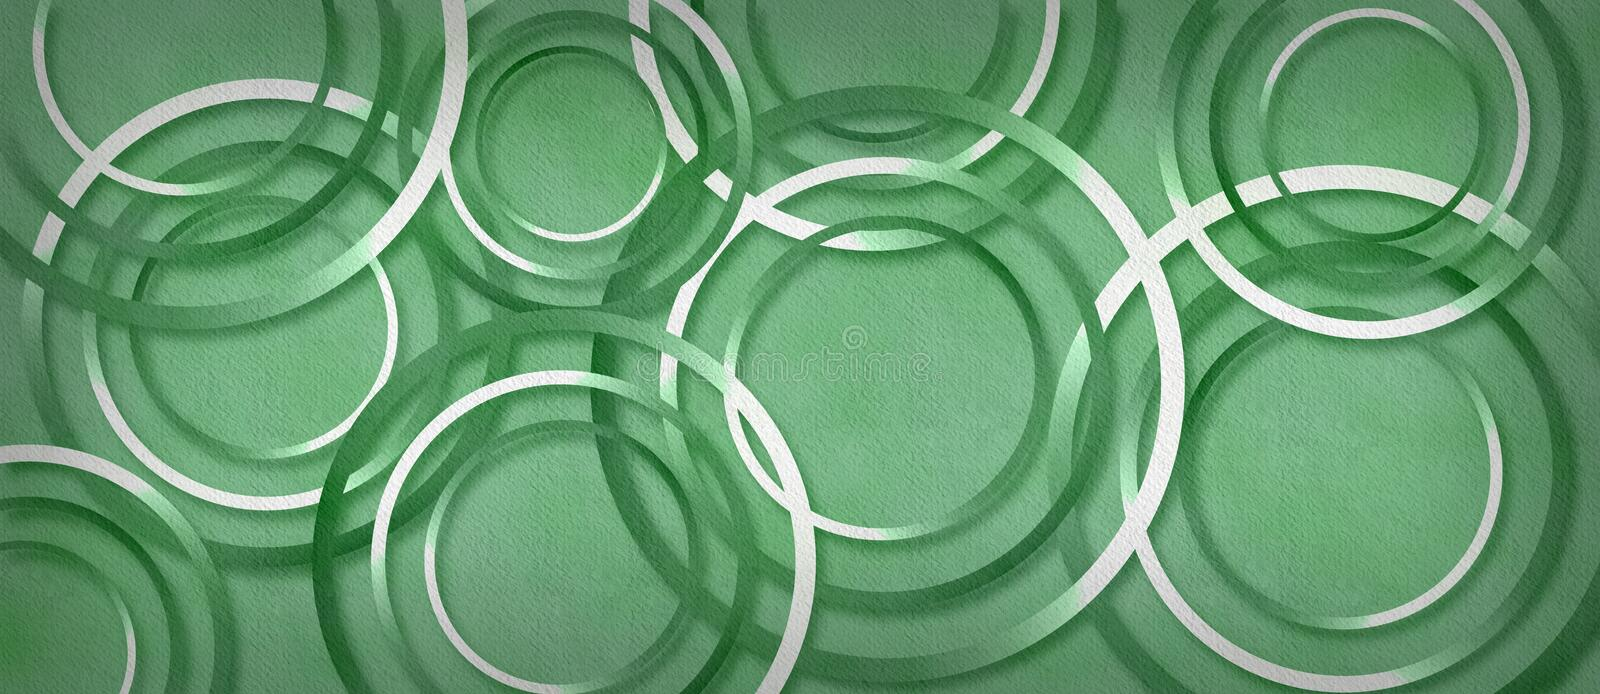 green and white abstract wallpaper